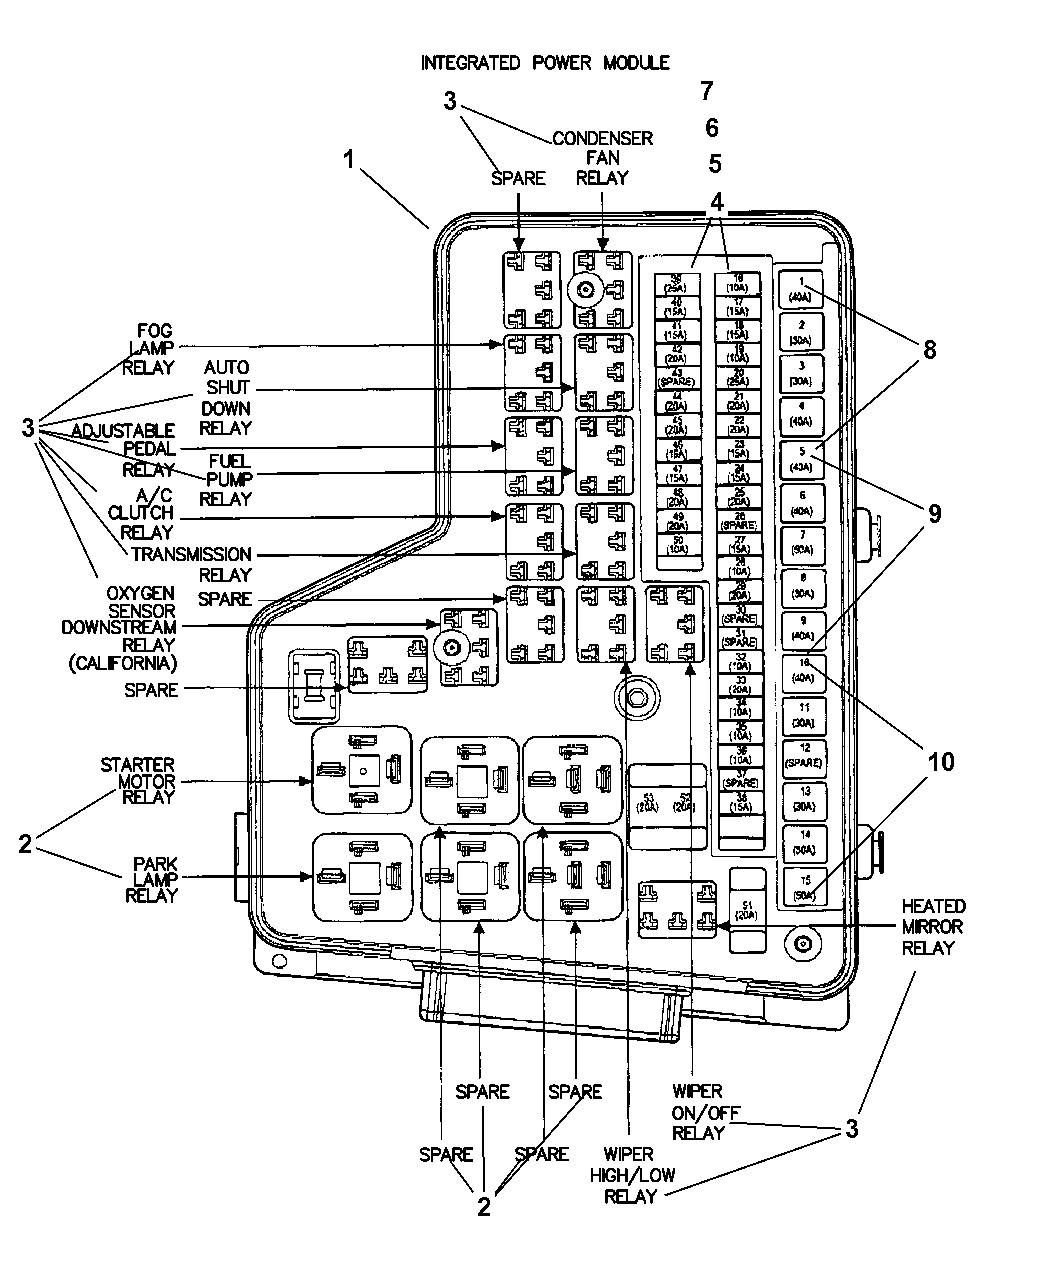 68005474aa genuine mopar block 2003 hummer h2 fuse diagram 2003 dodge ram 1500 power distribution center, fuses & relays